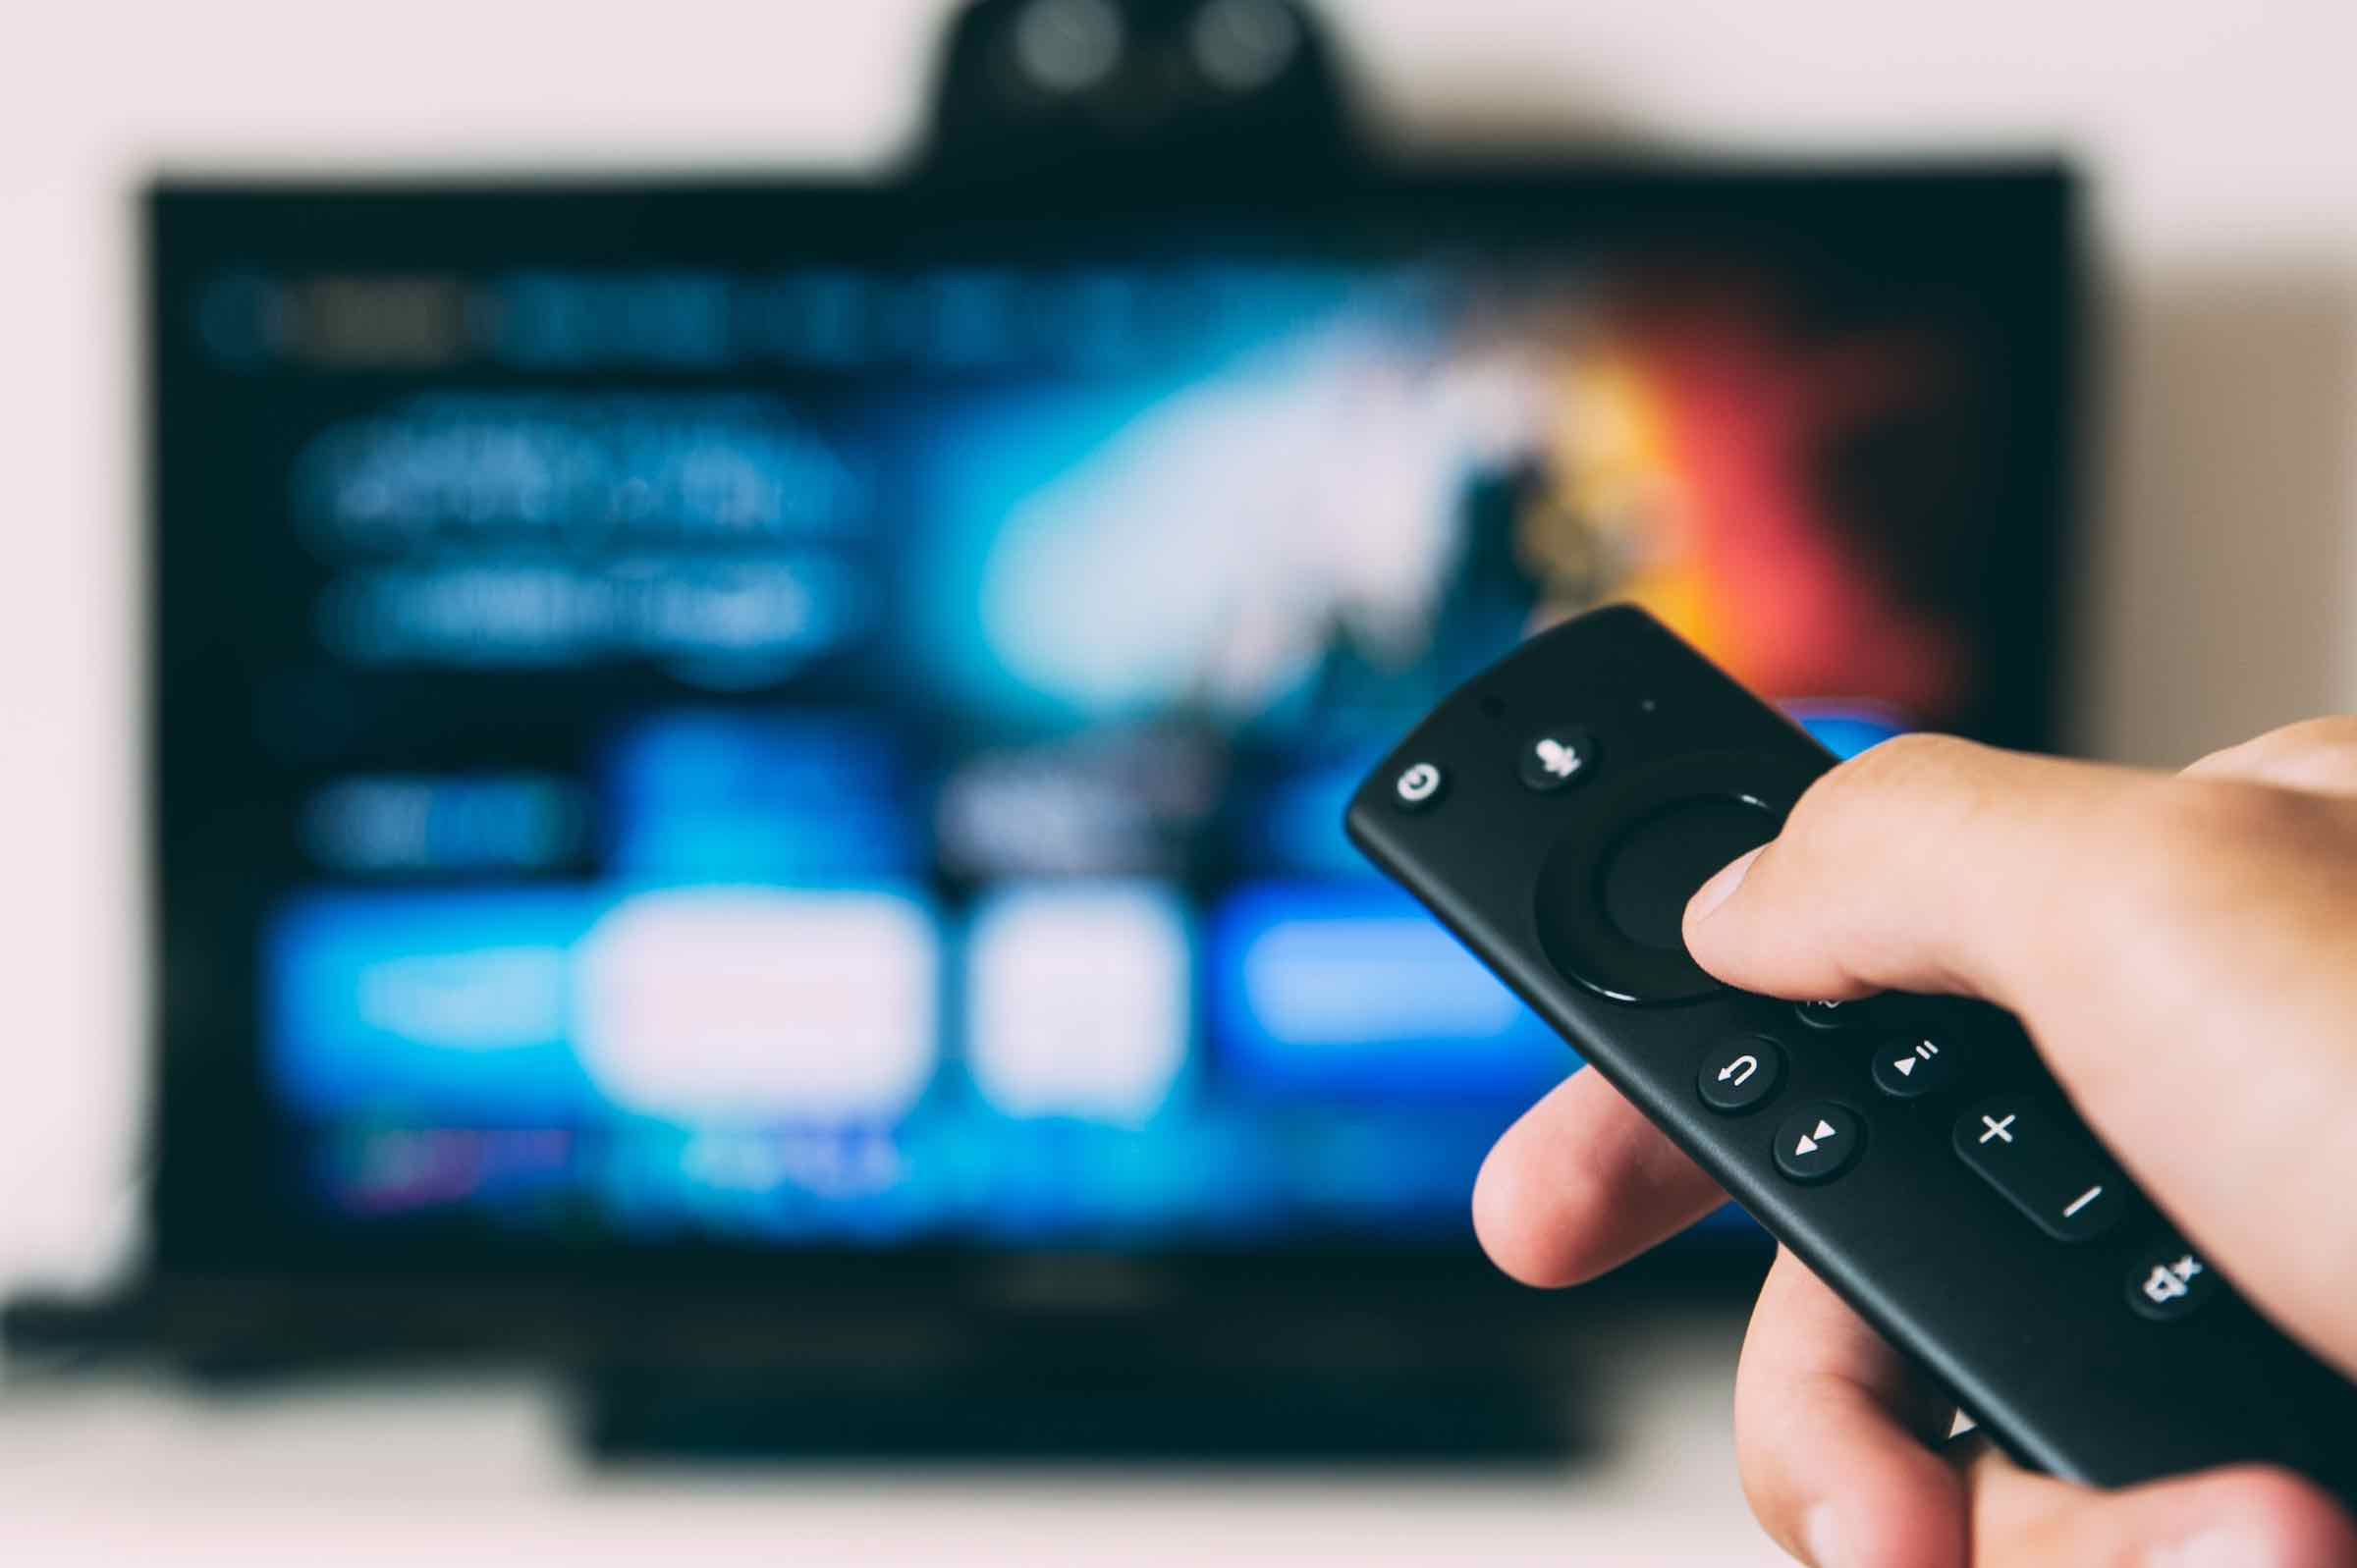 Streaming of movies has made it very easy for movie buffs to see Oscar winners difficult to find on DVDs and impossible to find in movie theaters.